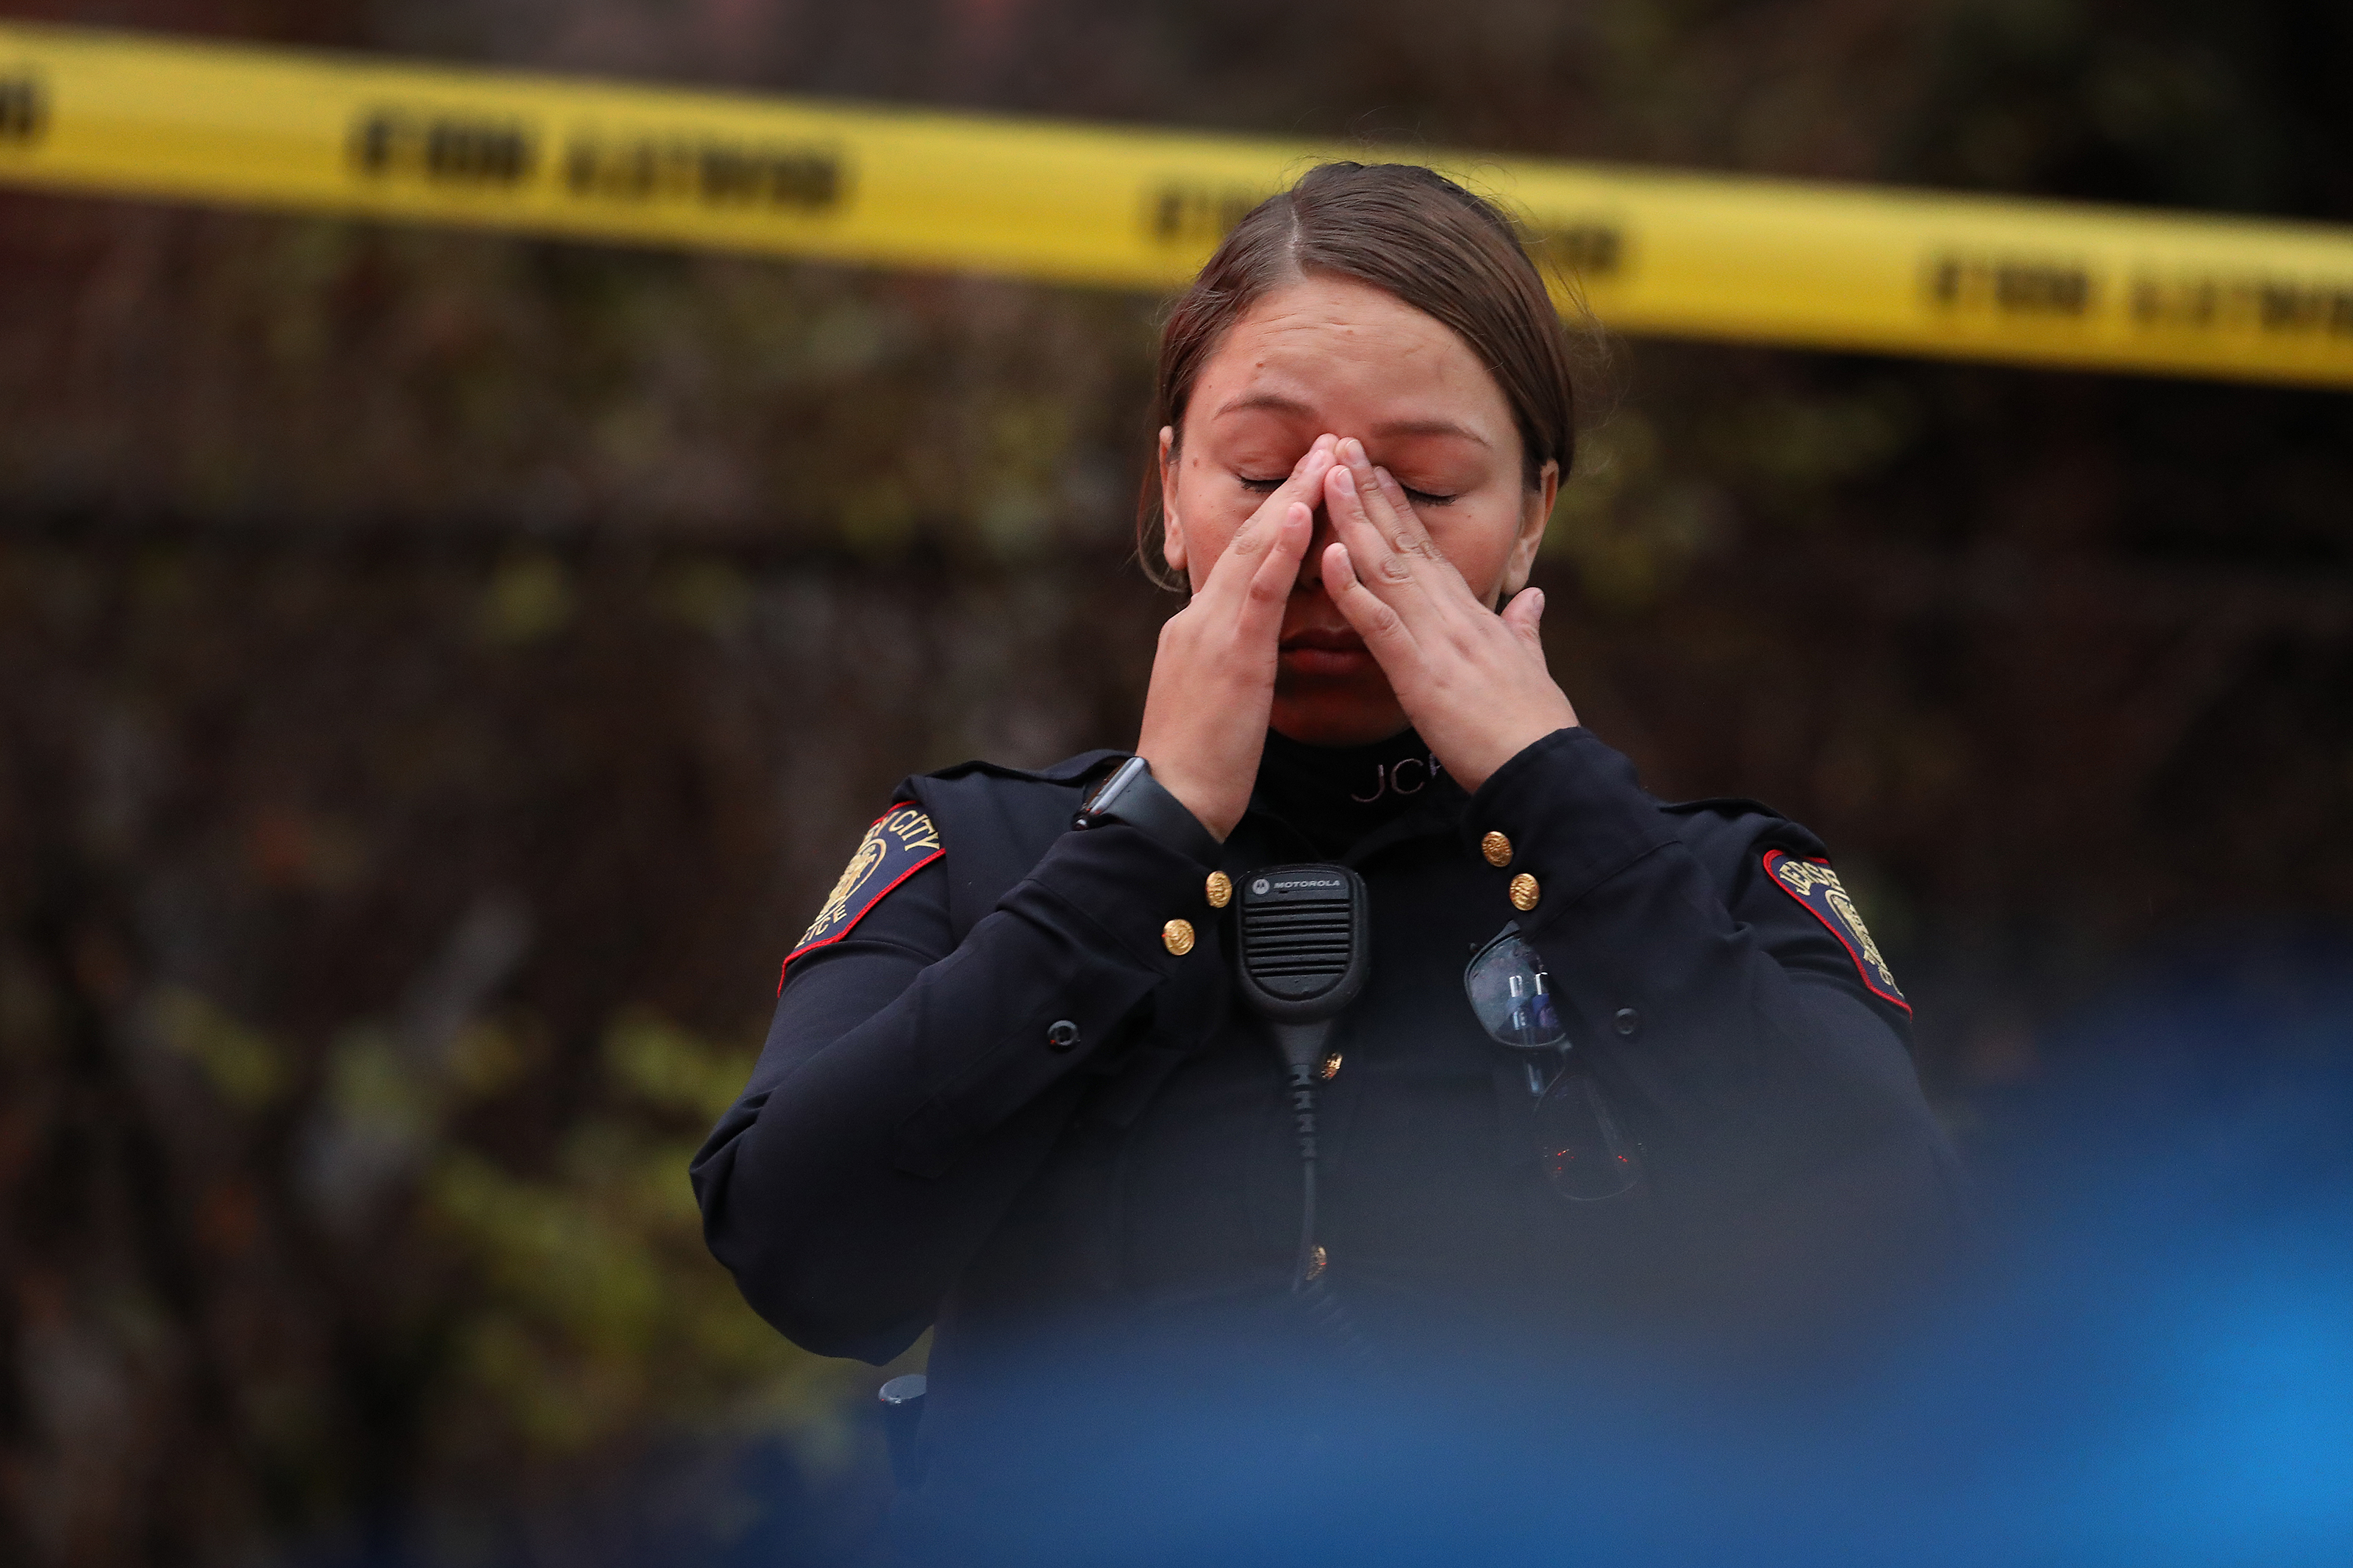 America's weak gun laws enable shootings by terrorists and extremists